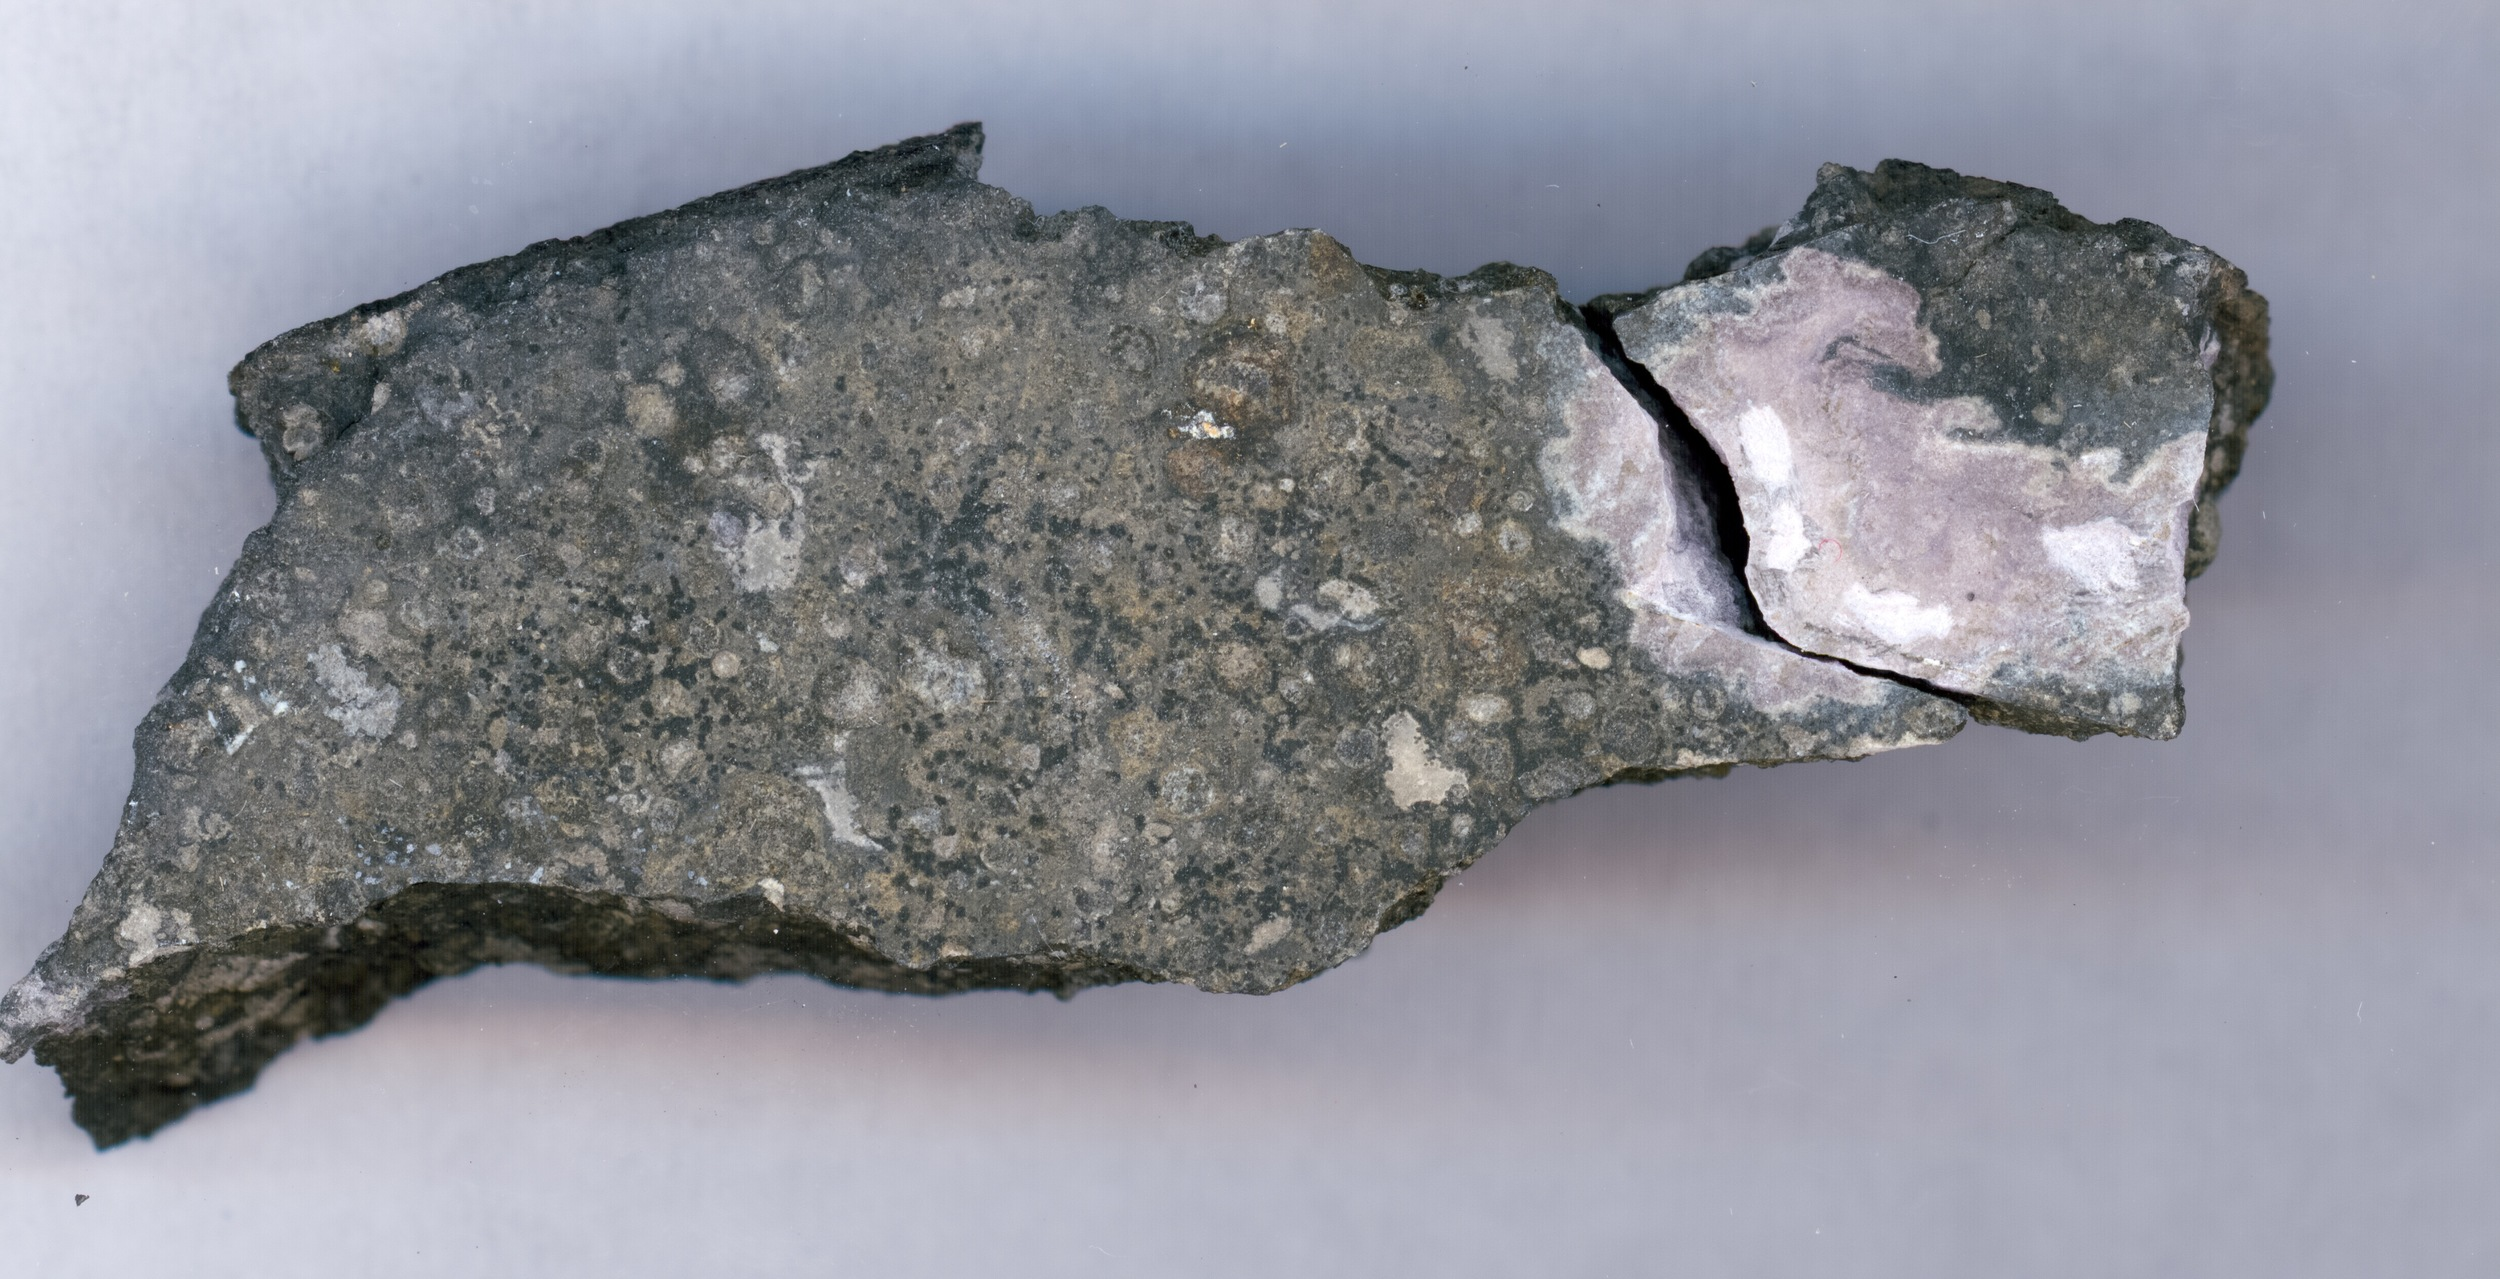 This close-up picture shows a ceramic-like refractory inclusion (pink inclusion) still embedded into the meteorite in which it was found. Refractory inclusions are the oldest-known rocks in the solar system (4.5 billion years old). Analysis of the uranium isotope ratios of such inclusions demonstrates that a long-lived isotope of the radioactive element curium was present in the solar system when this inclusion was formed. The inclusion measures 1.5 centimers (.59 inches) in length. - Image Credit:Origins Lab, University of Chicago